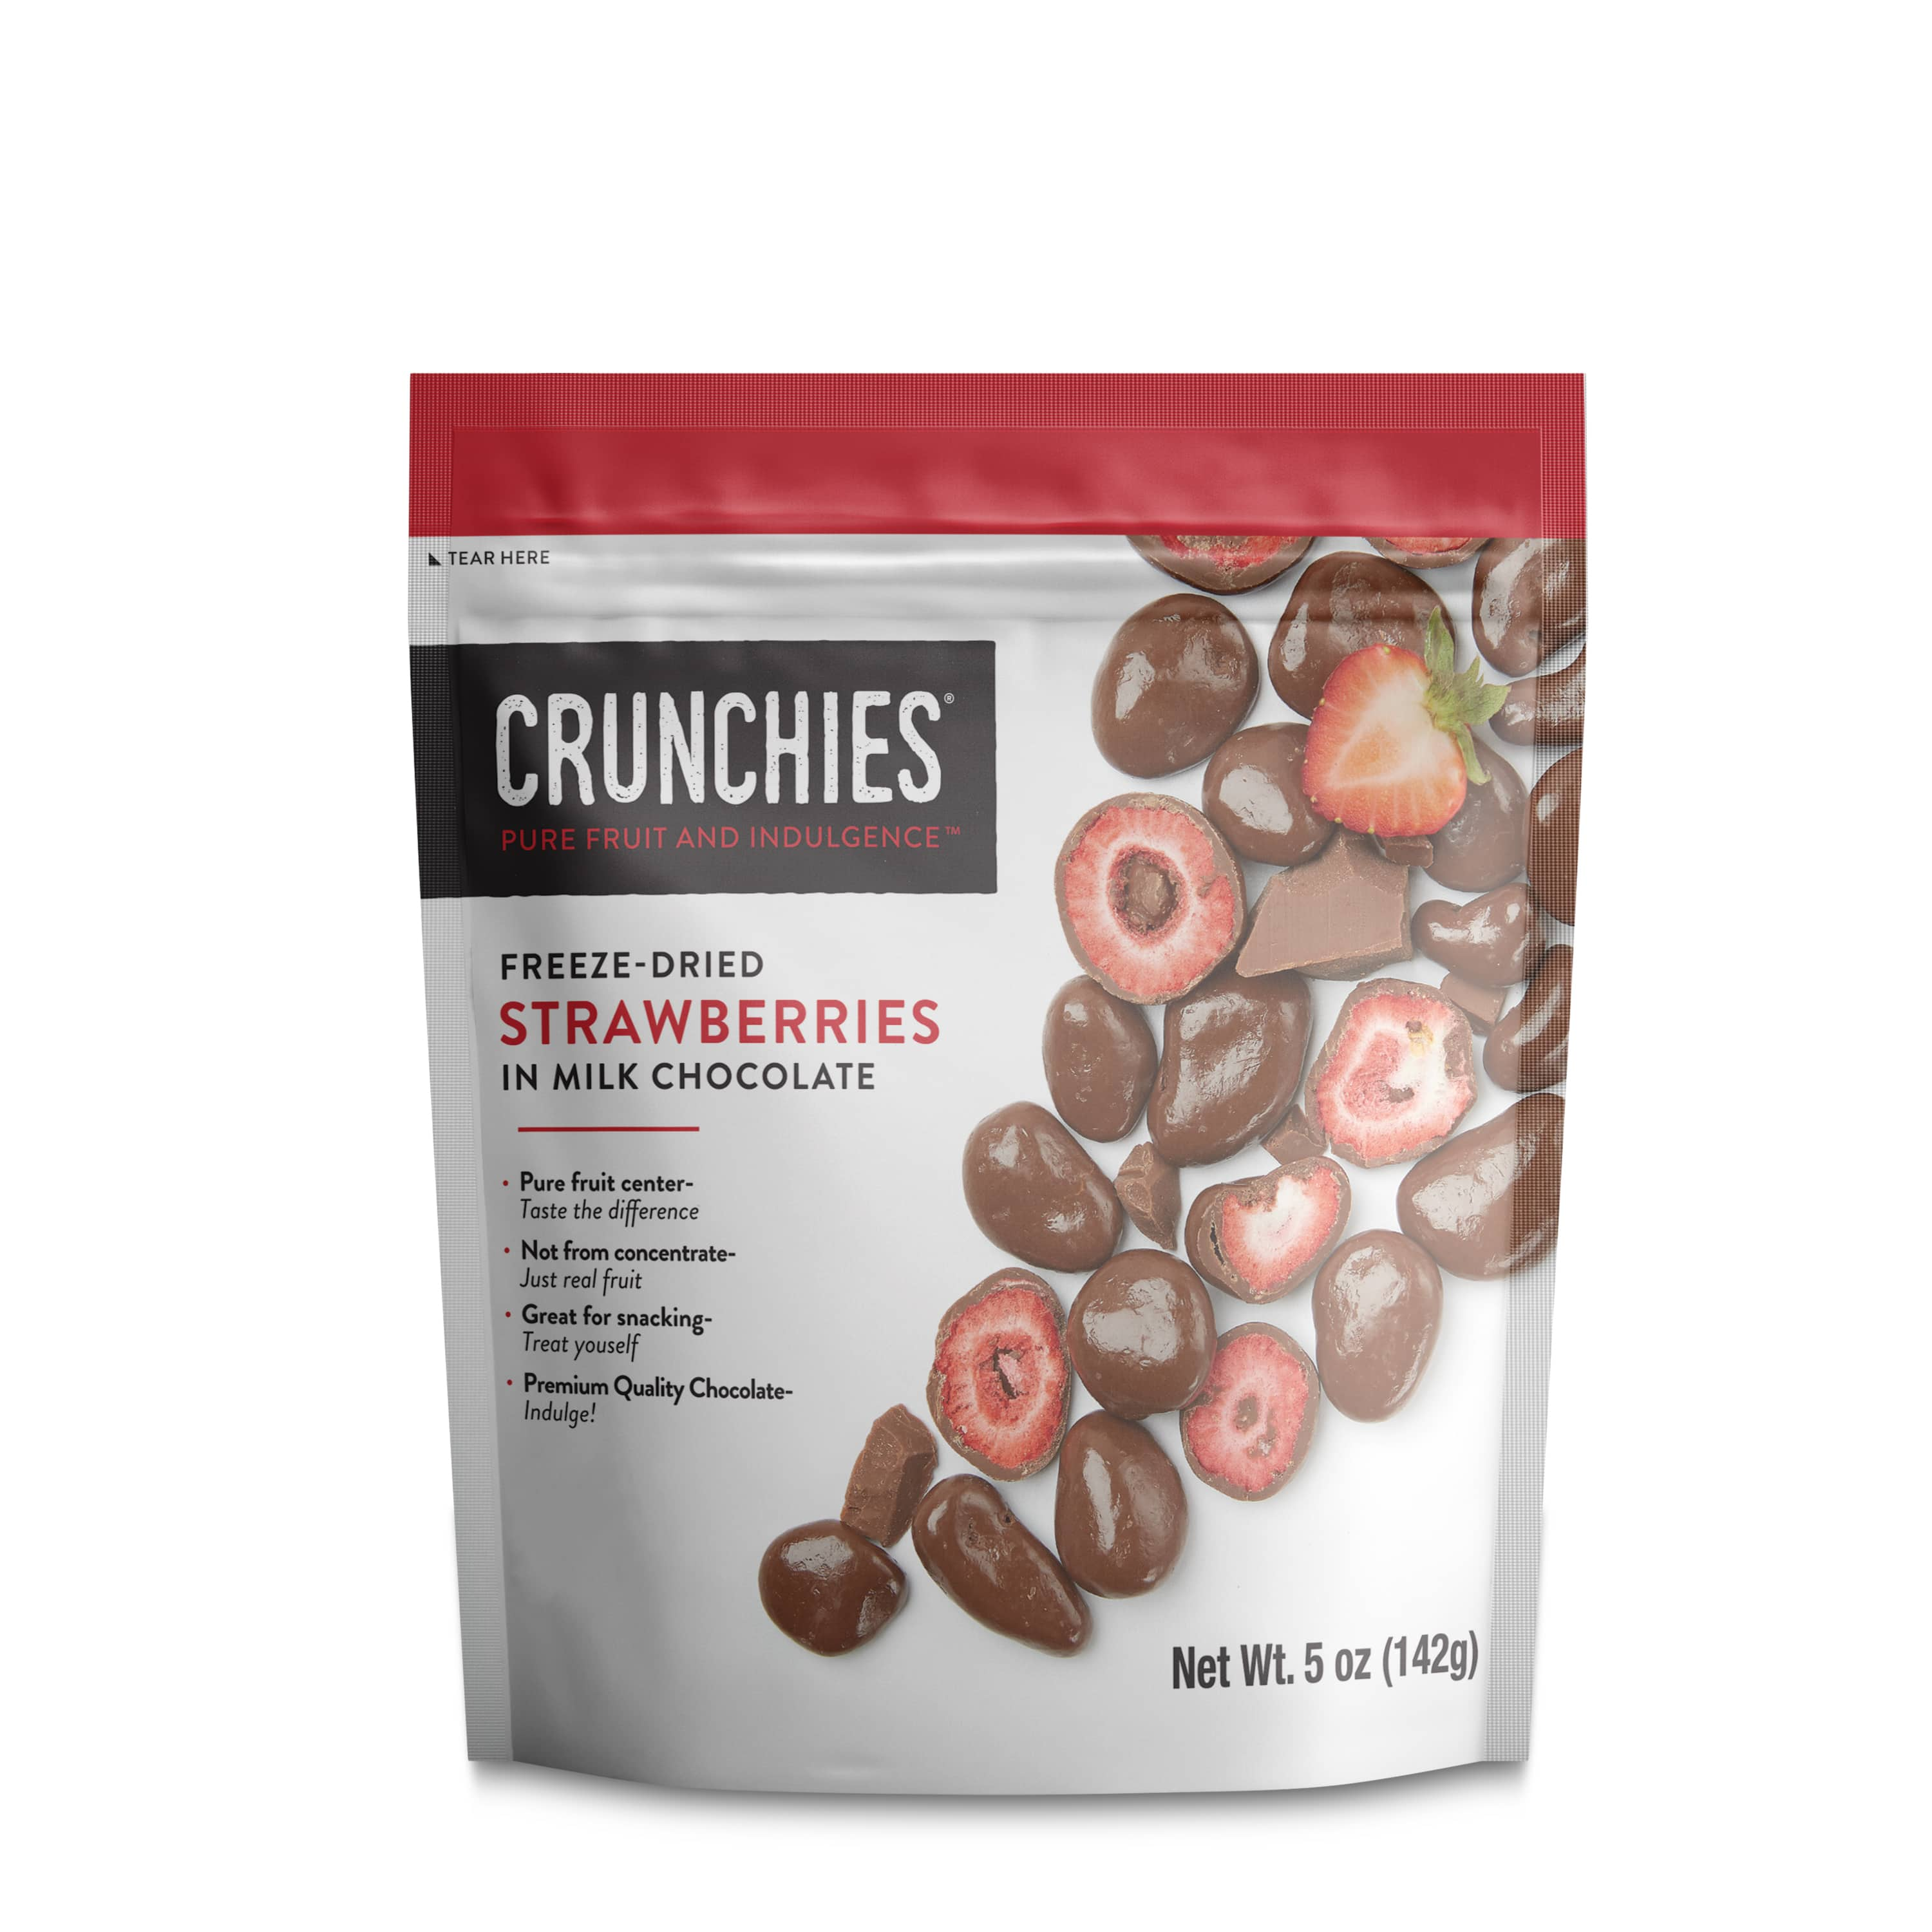 Indulge Your Craving: Crunchies Launches New Chocolate Covered Freeze-Dried Fruit